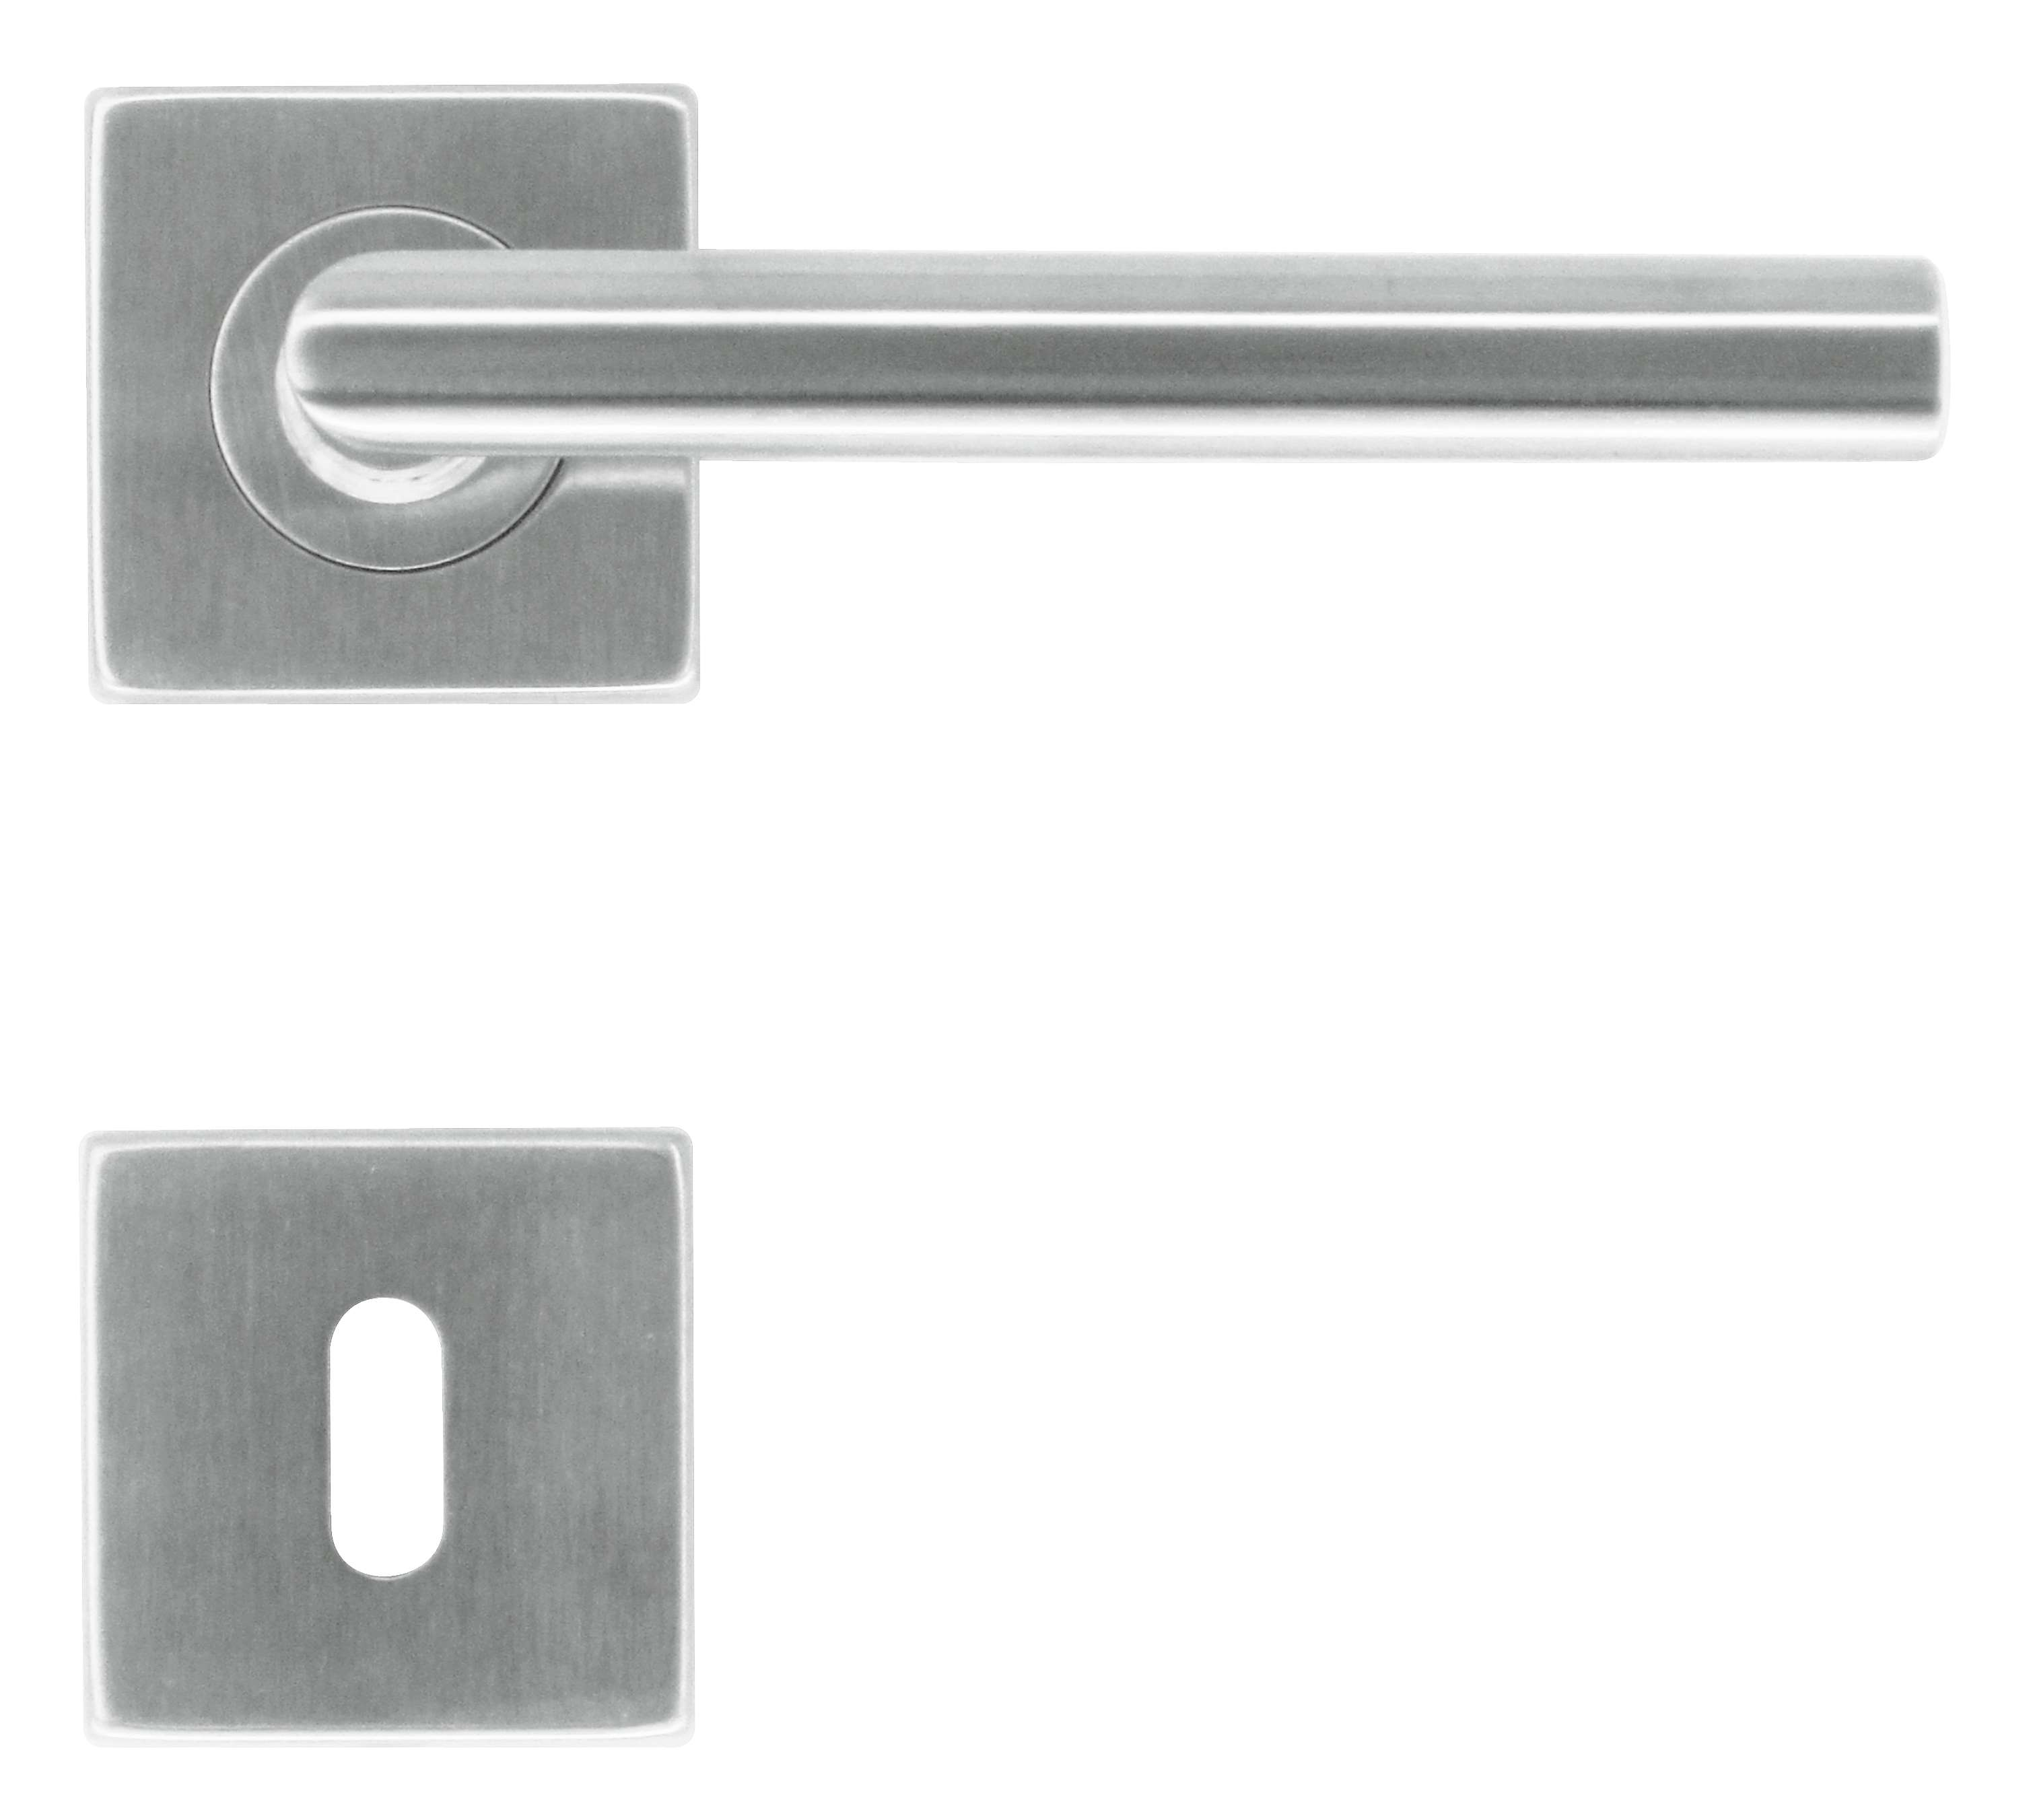 BEQUILLE SQUARE I SHAPE 16MM  INOX PLUS R+E